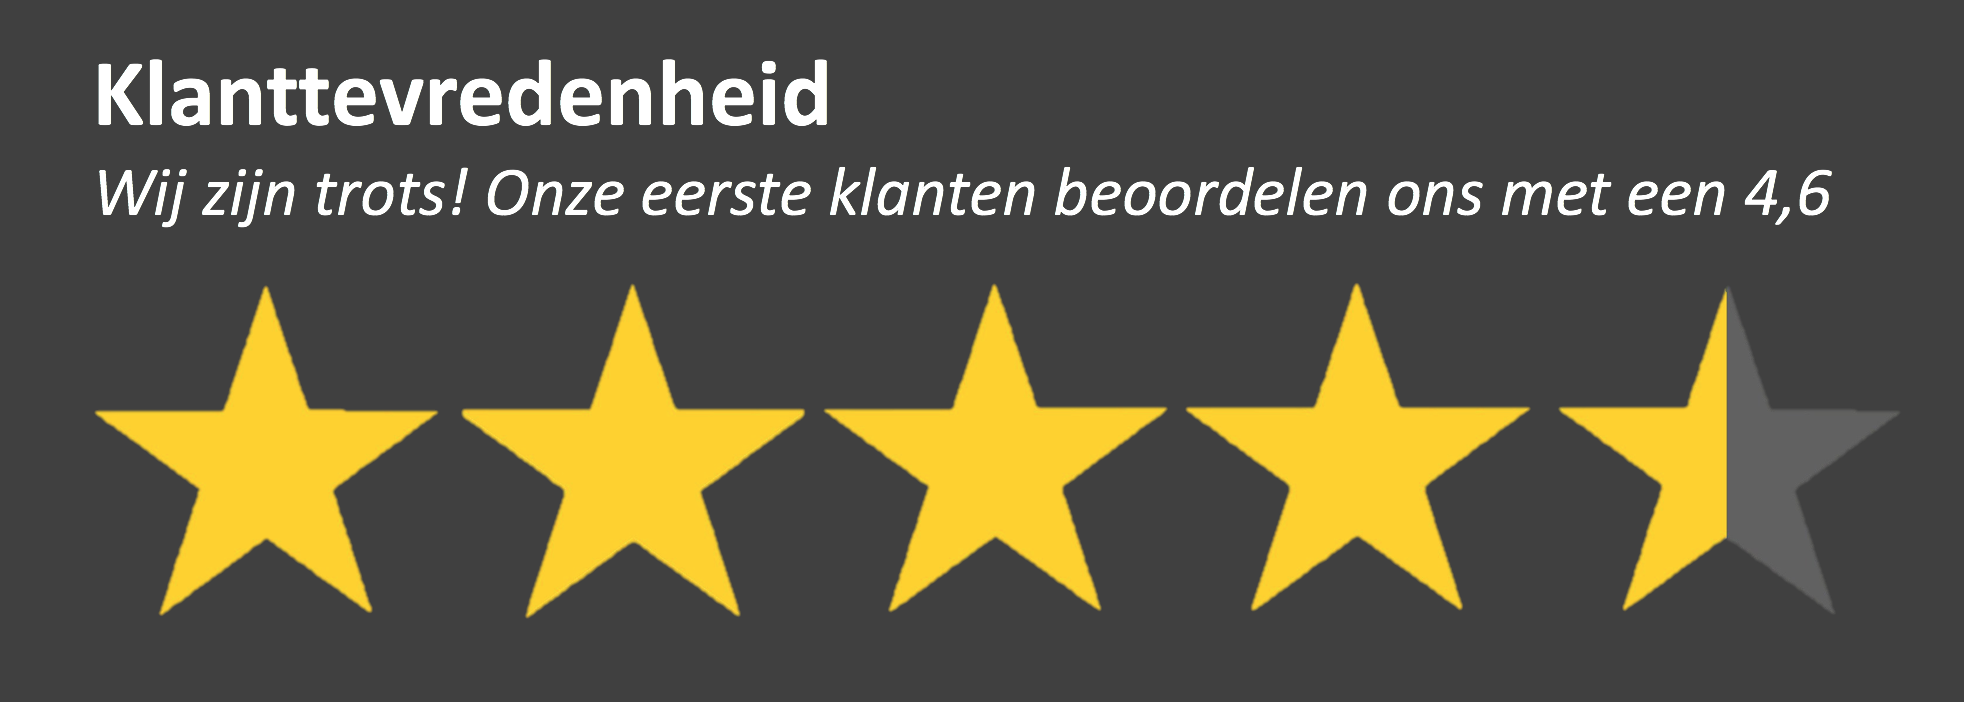 klanttevredenheid 4,6. dr dent reviews